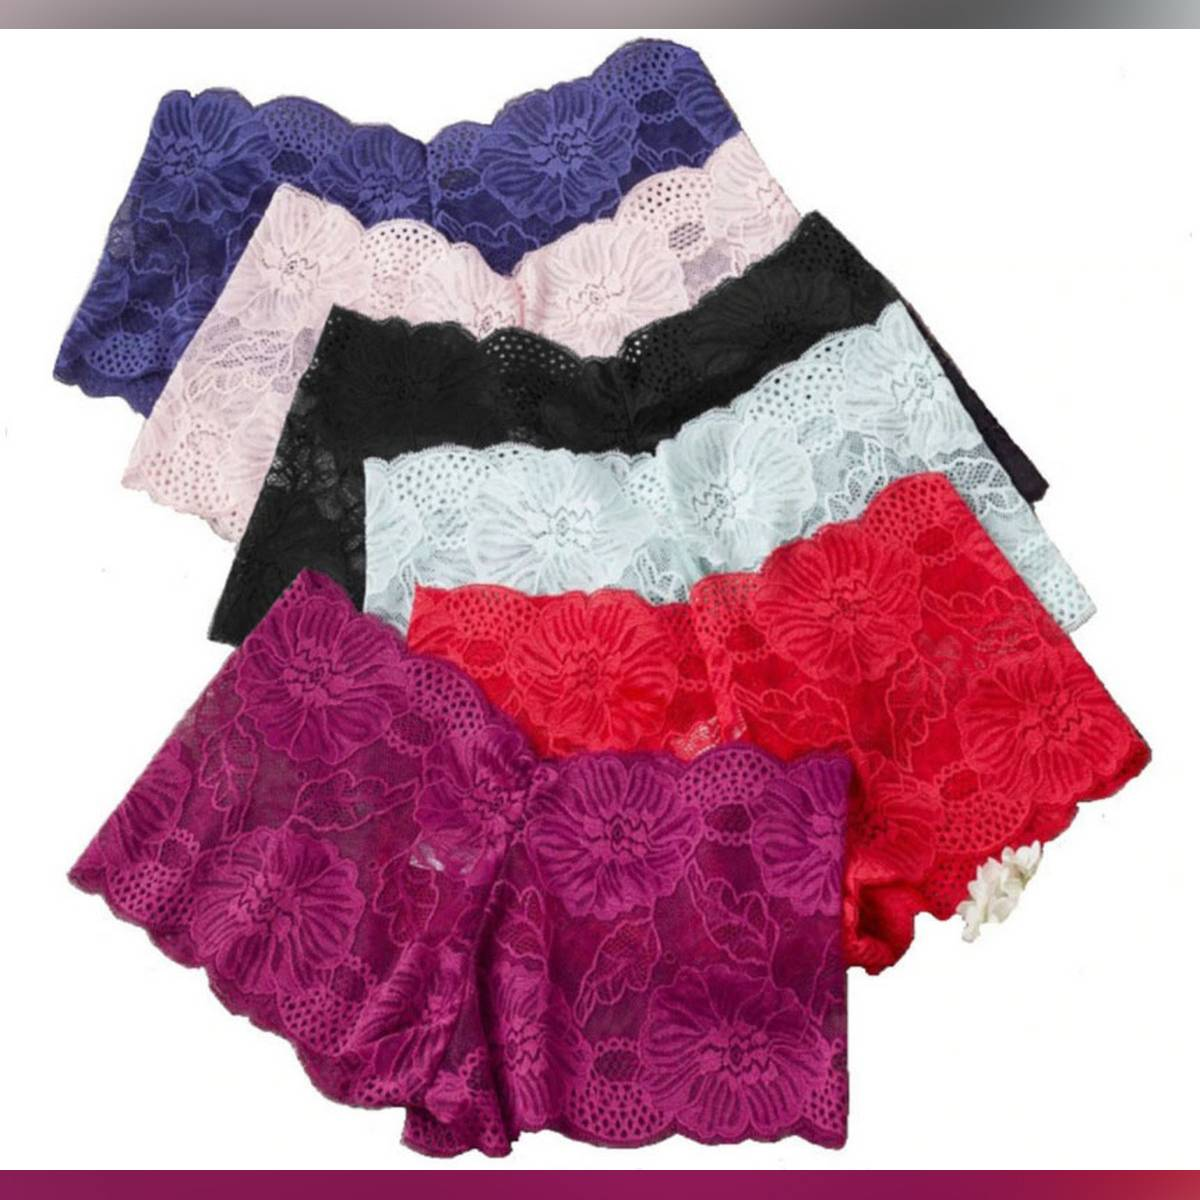 Lace Underwear Cotton Seamless Transparent Sexy Young Girls Women Panty